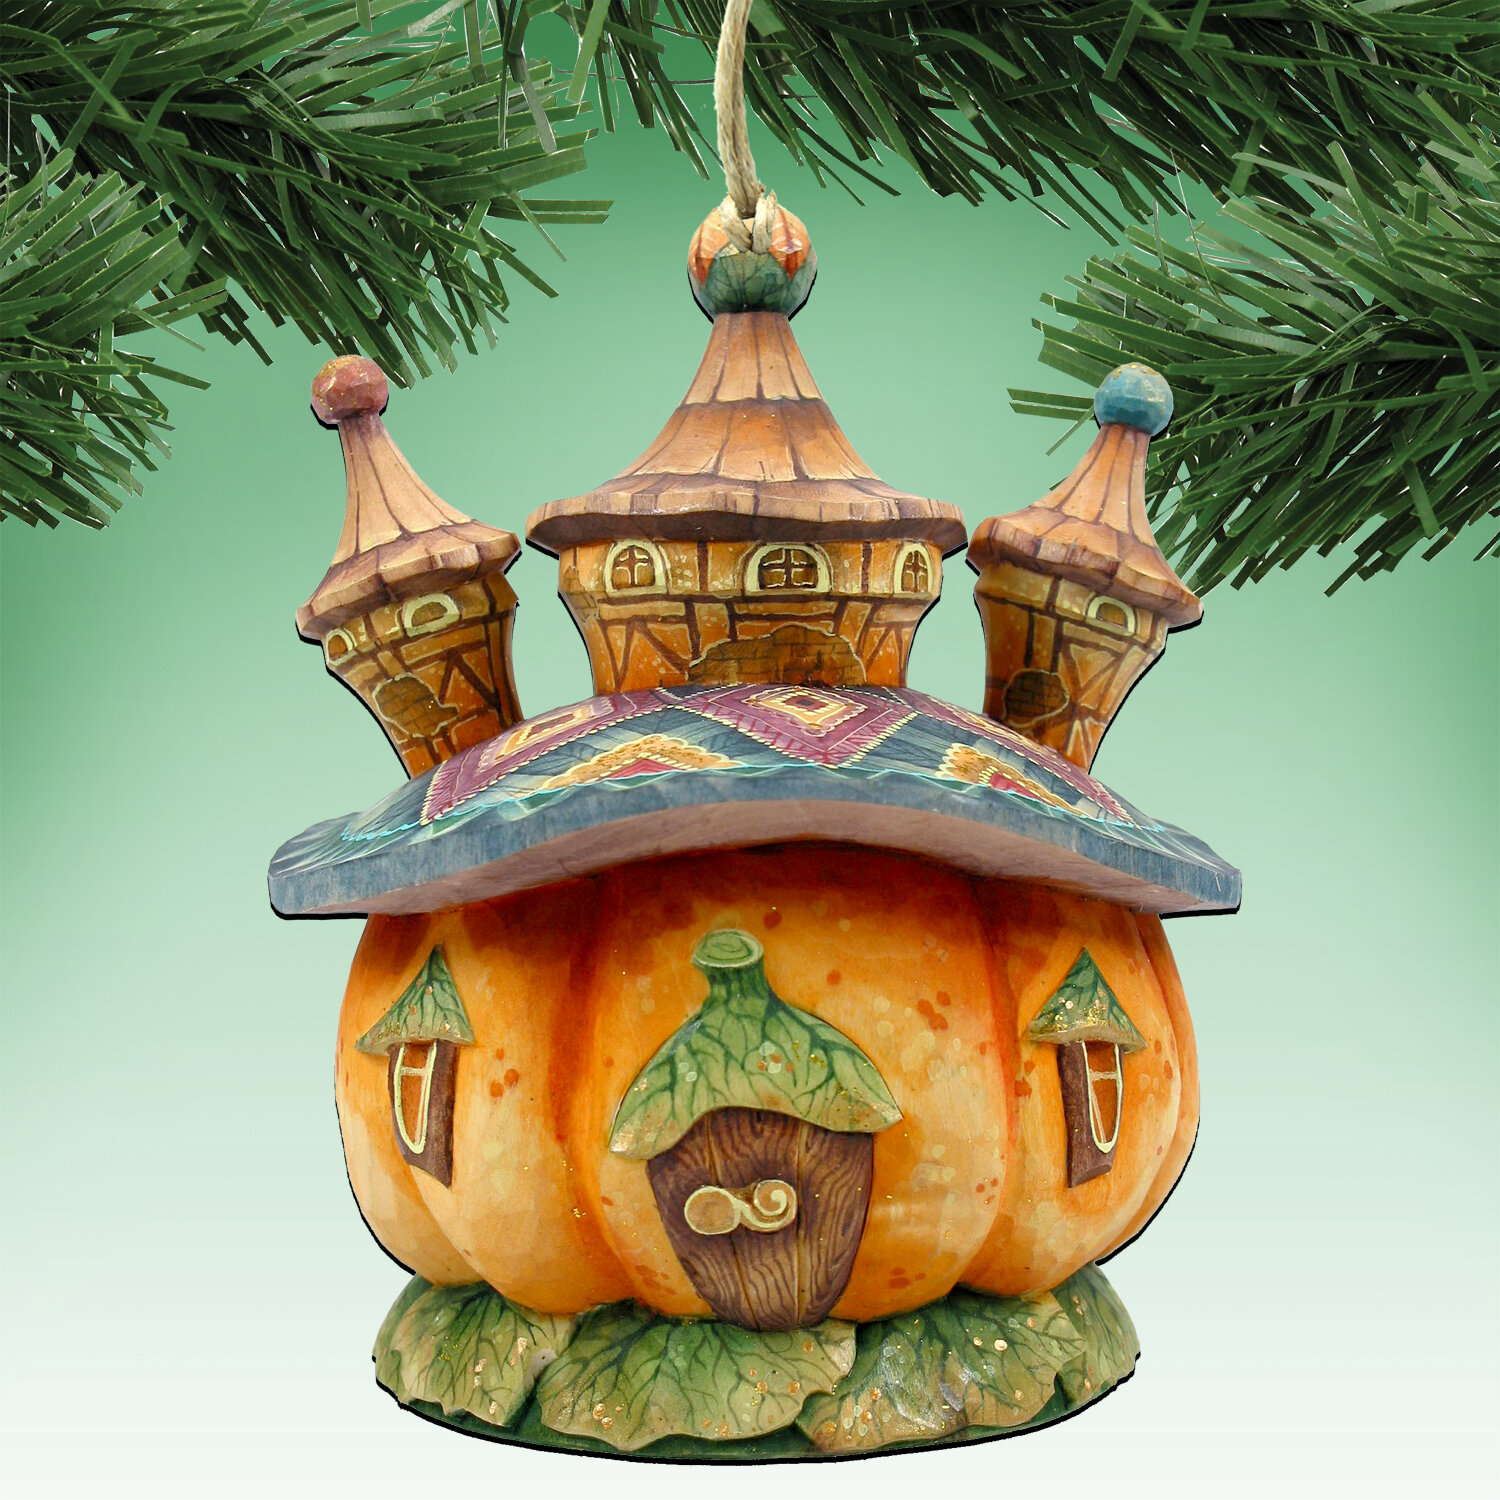 The Holiday Aisle Halloween Pumpkin Dome Hanging Shaped Wood Ornament Wayfair